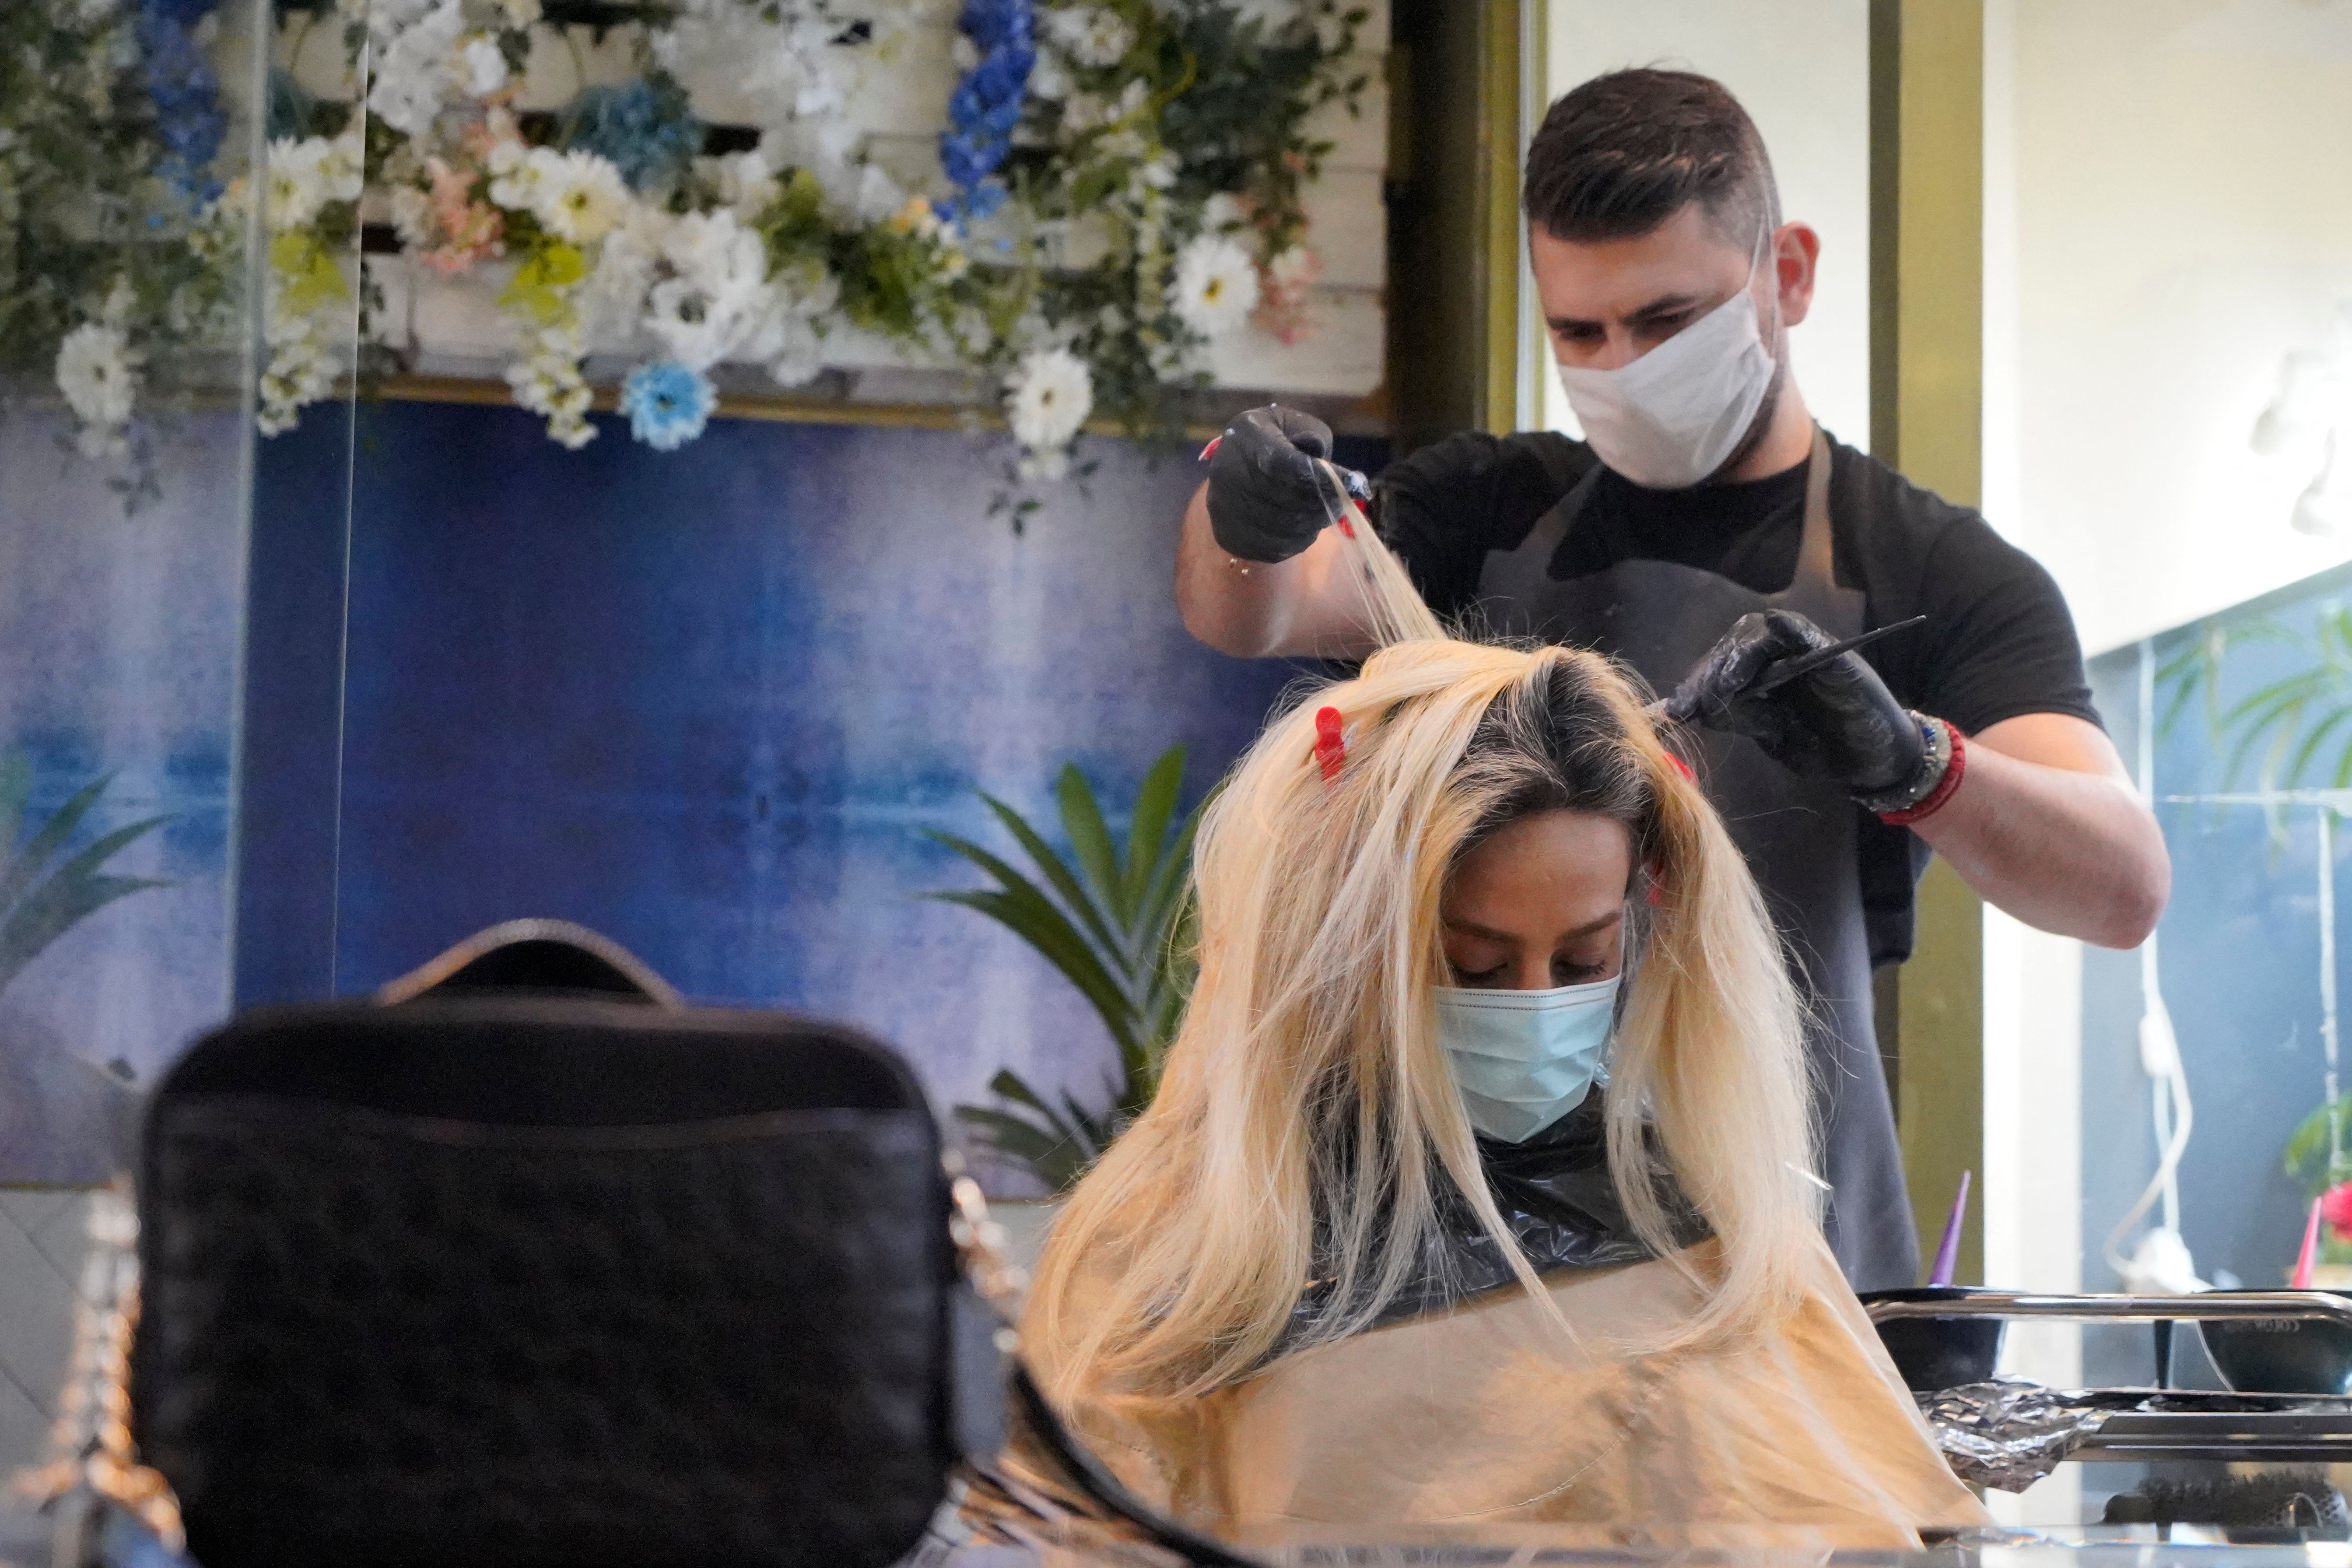 <p>Hairdressers work on a client at Gusto Hair salon in central London as it reopens following the easing of coronavirus restrictions after England's third national lockdown on April 12, 2021 (Photo by Niklas HALLE'N / AFP) (Photo by NIKLAS HALLE'N/AFP via Getty Images)</p>